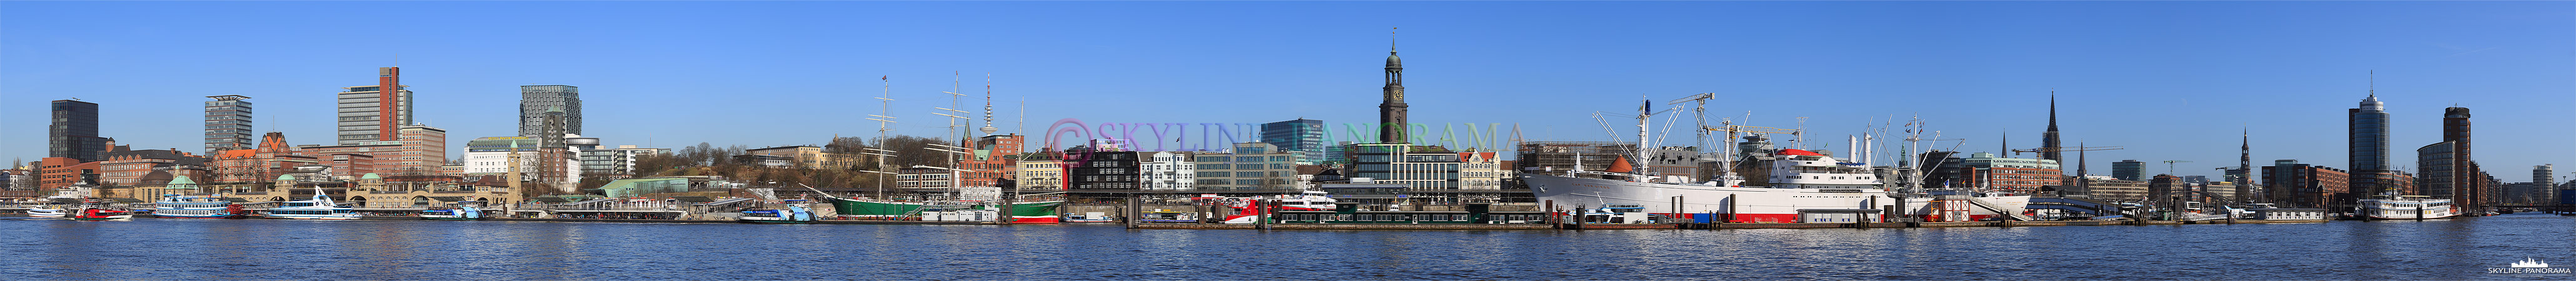 Skyline Hamburg am Tag